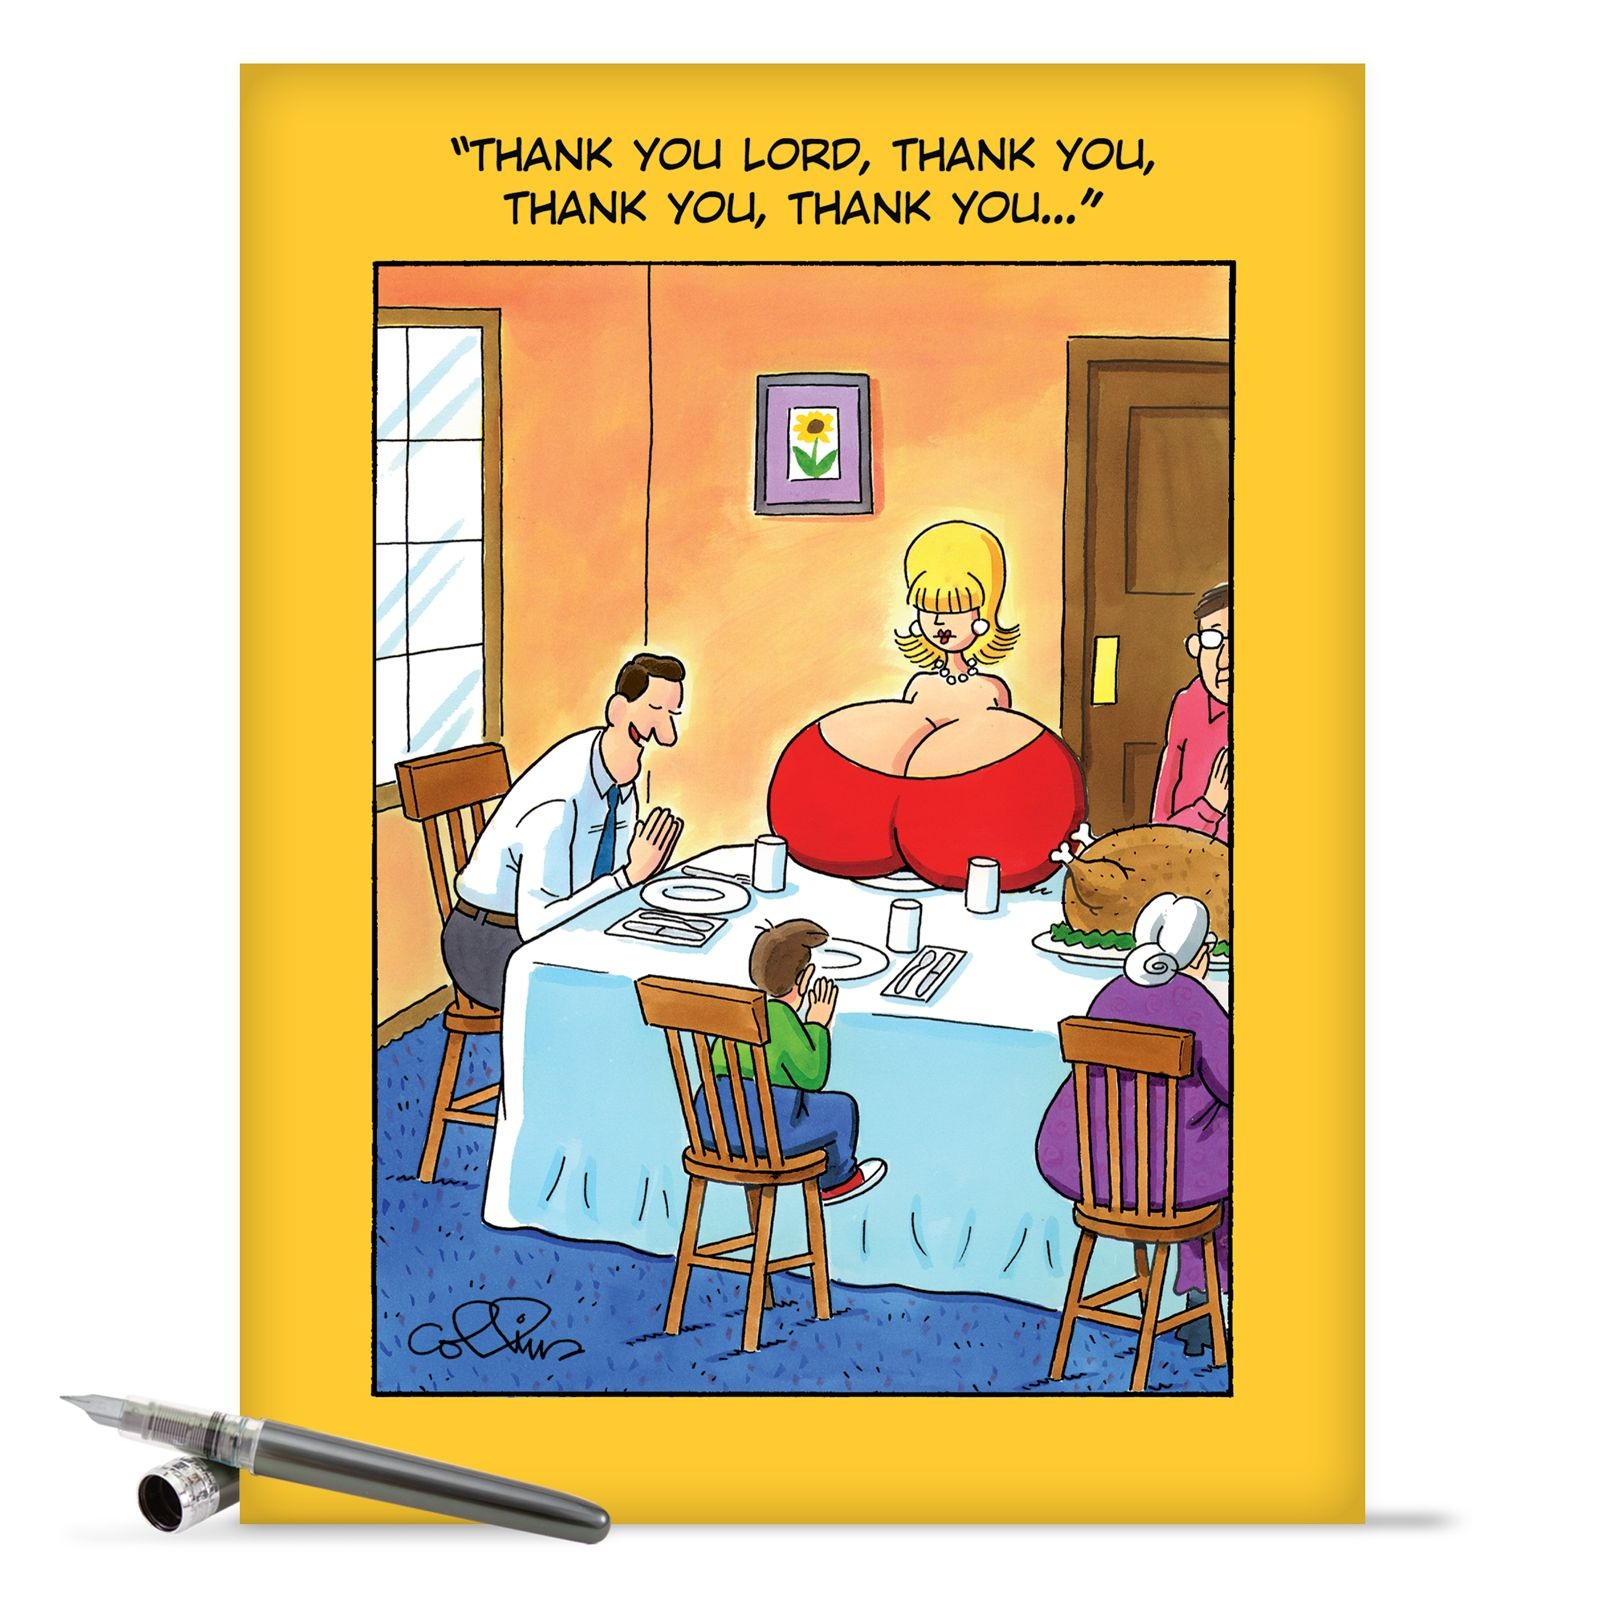 J8420 Jumbo Funny Birthday Card Thank You Lord With Matching